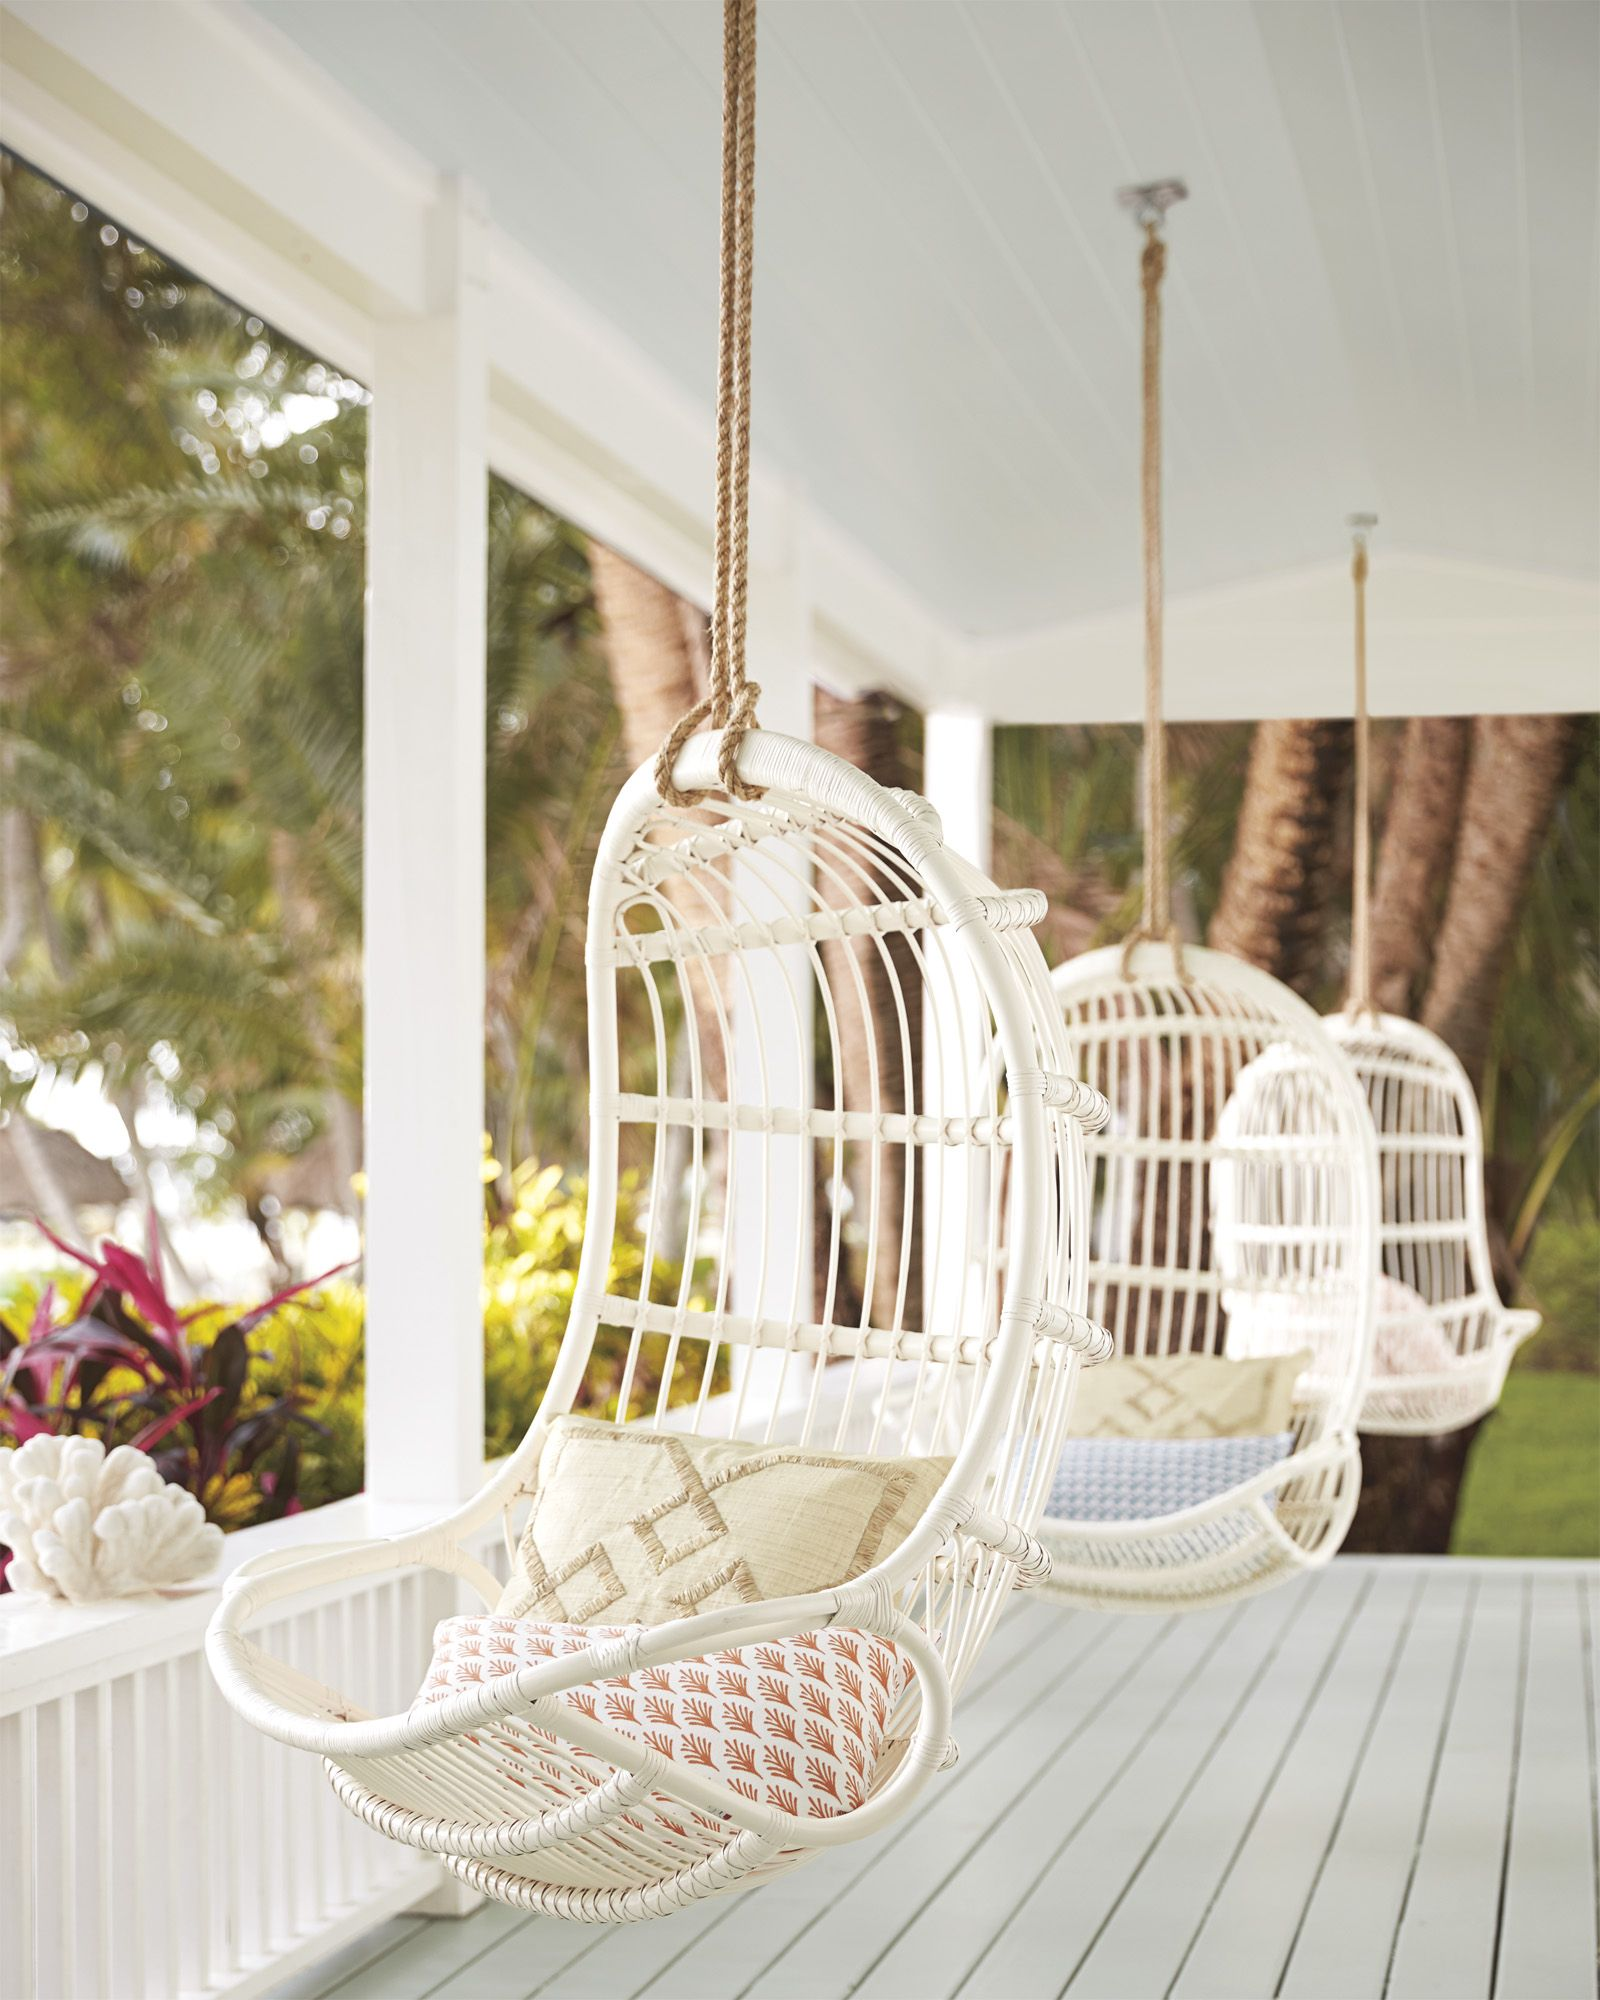 Front Porch Decorating Ideas With The Perfect Adirondack Chairs Our House Now A Home: Swinging Chair, Hanging Chair, Outdoor Chairs